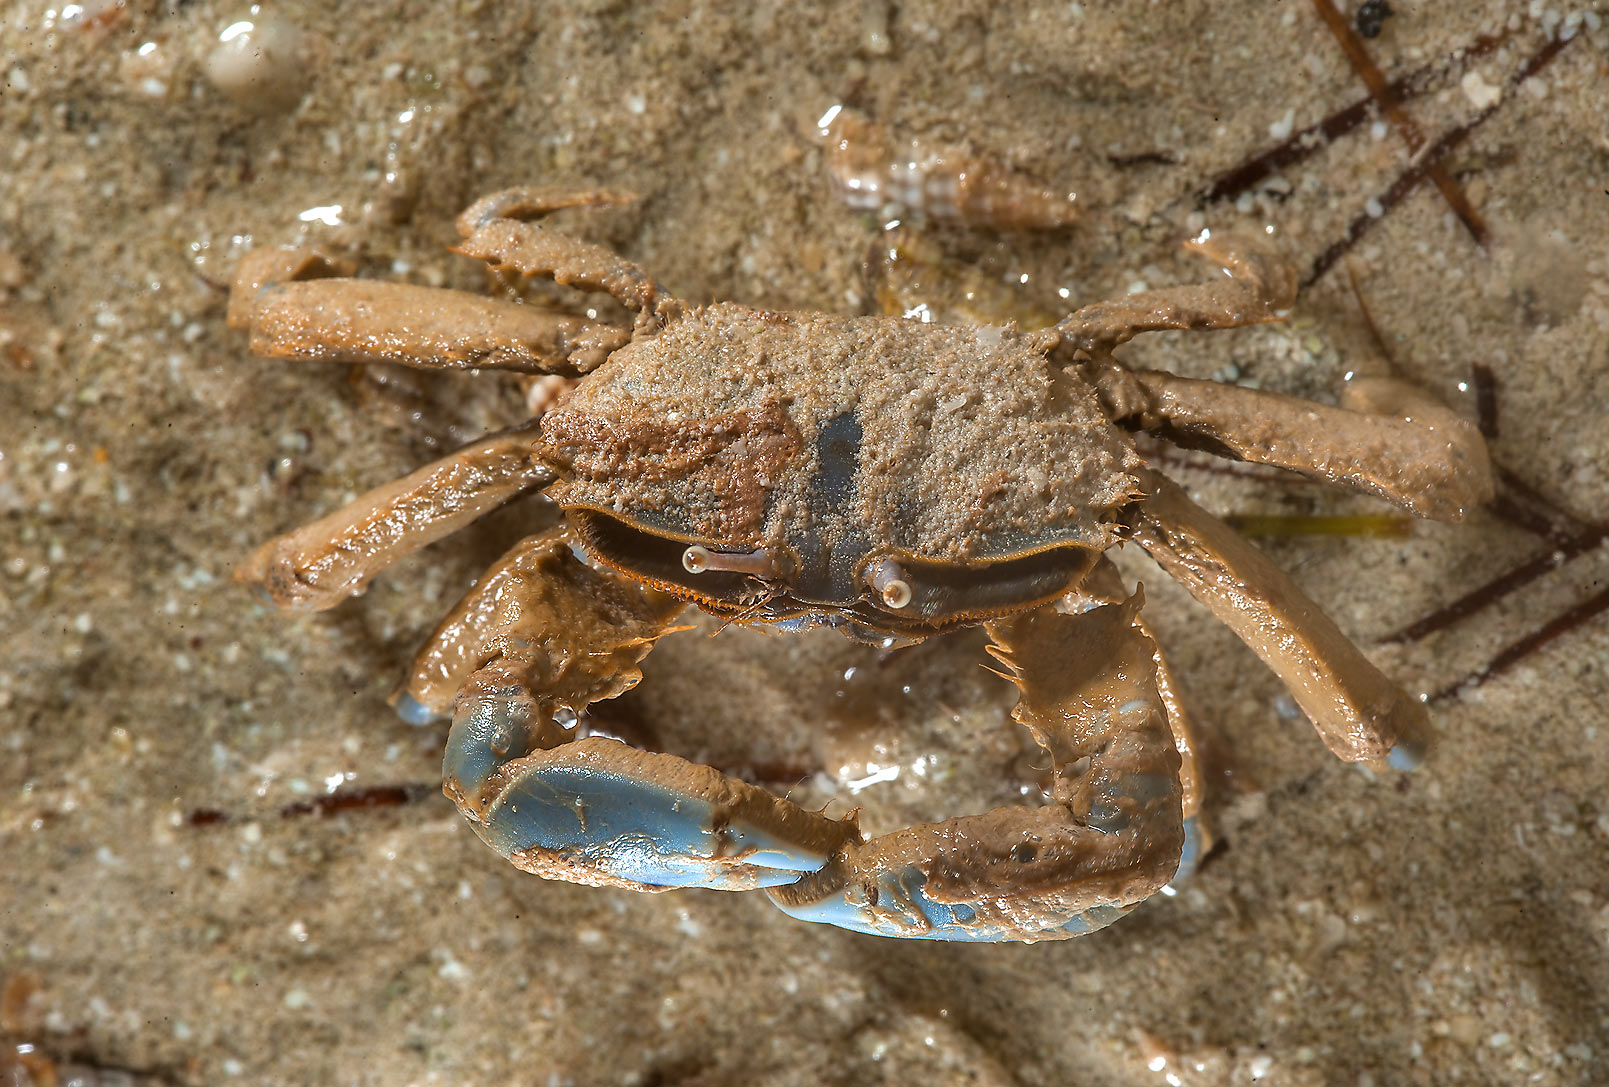 Small sand crab in Al Mafyar (Mafjar) area on northern coast (Al Shamal). Qatar